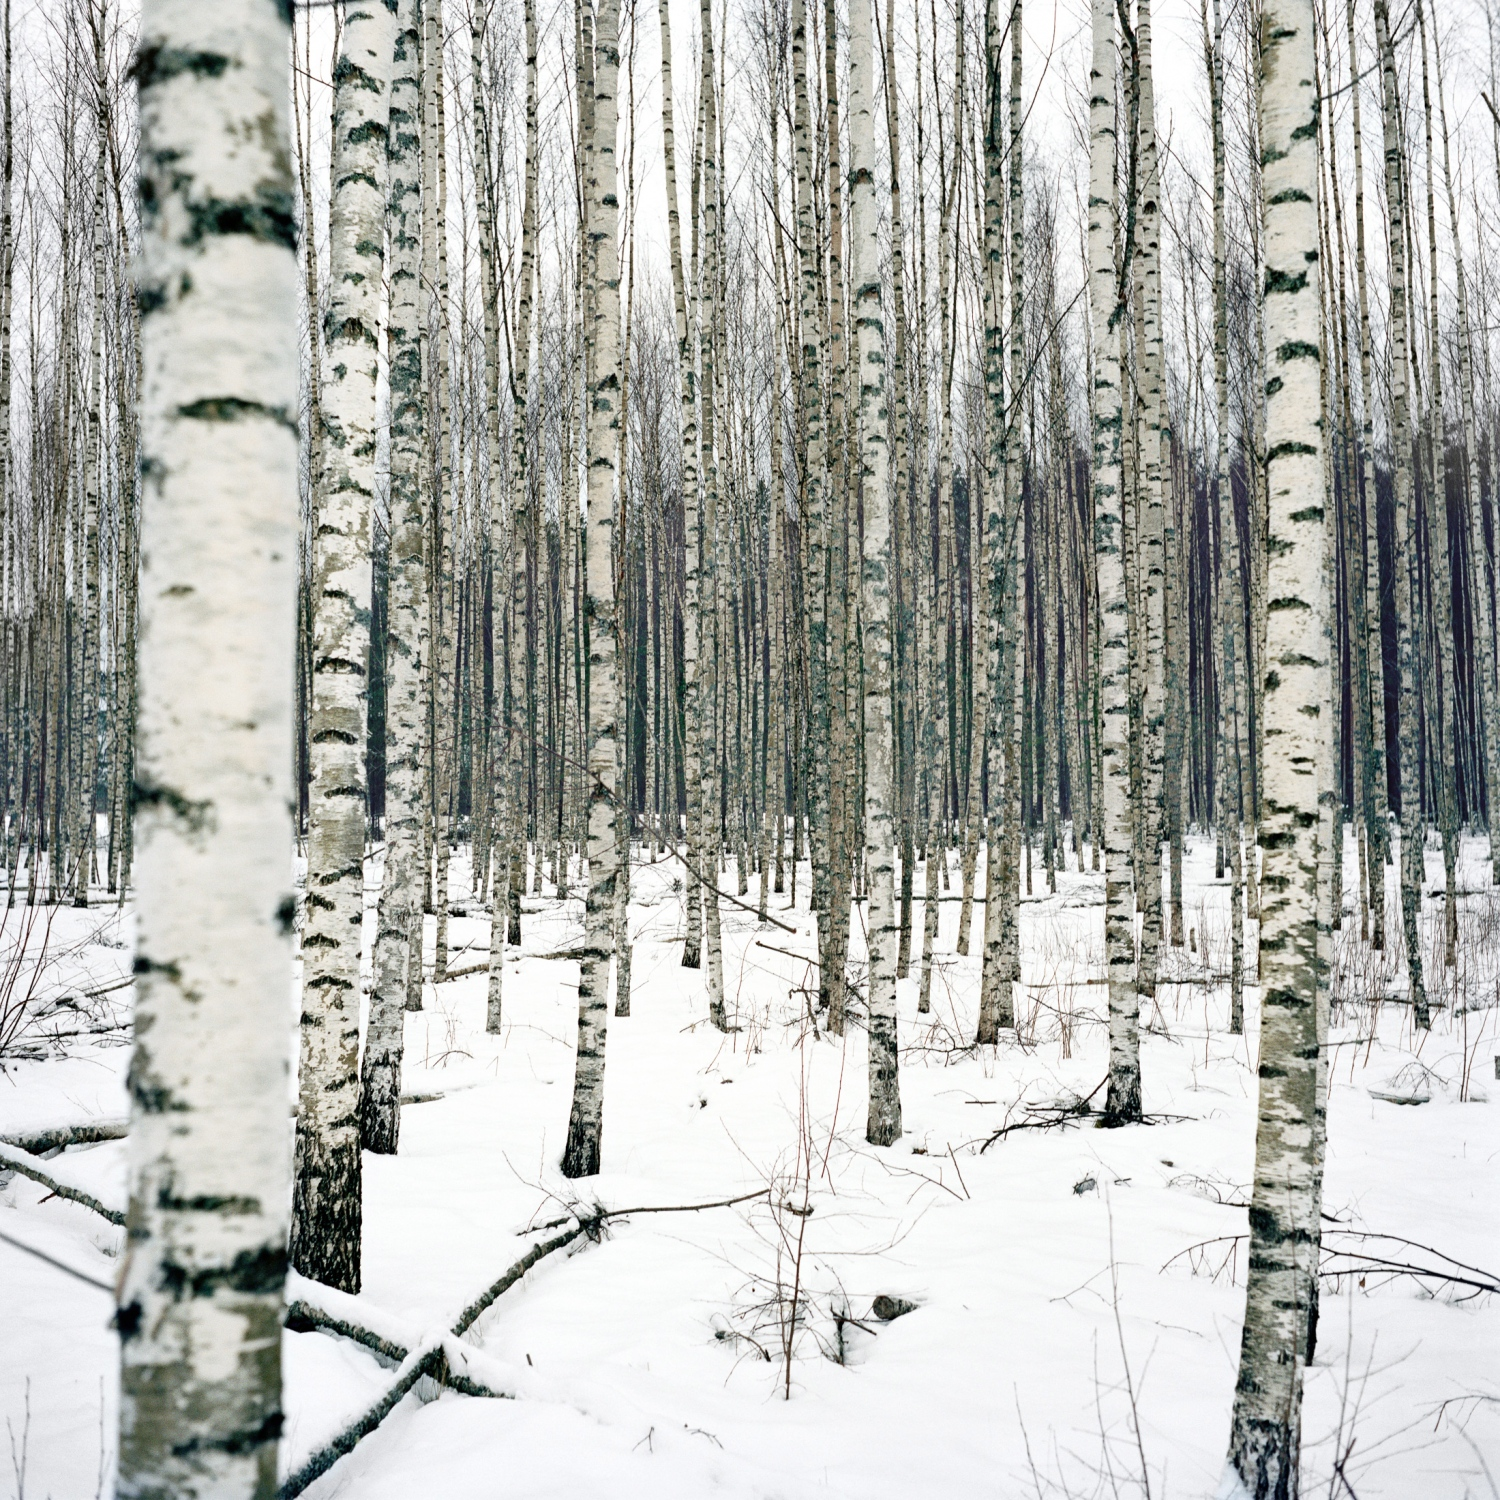 In wintertime when the landscape is covered in white, Setomaa intermingle shades of gray and white until the numerous birch forests. A tree from which a fermented drink called hapöndöt köomahl is extracted every spring.